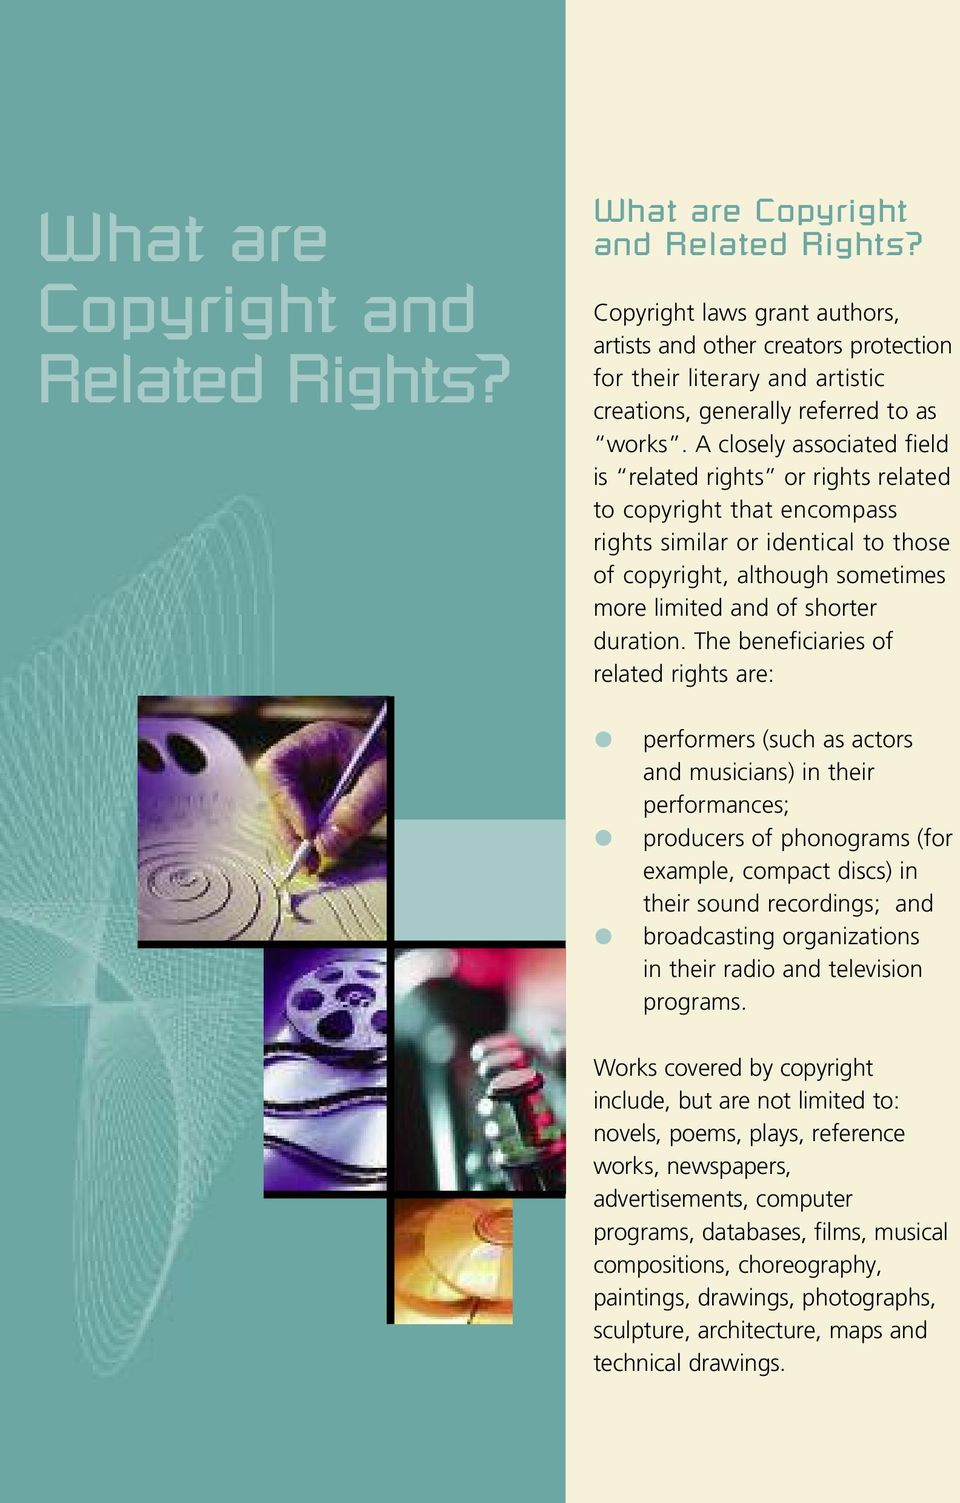 A closely associated field is related rights or rights related to copyright that encompass rights similar or identical to those of copyright, although sometimes more limited and of shorter duration.